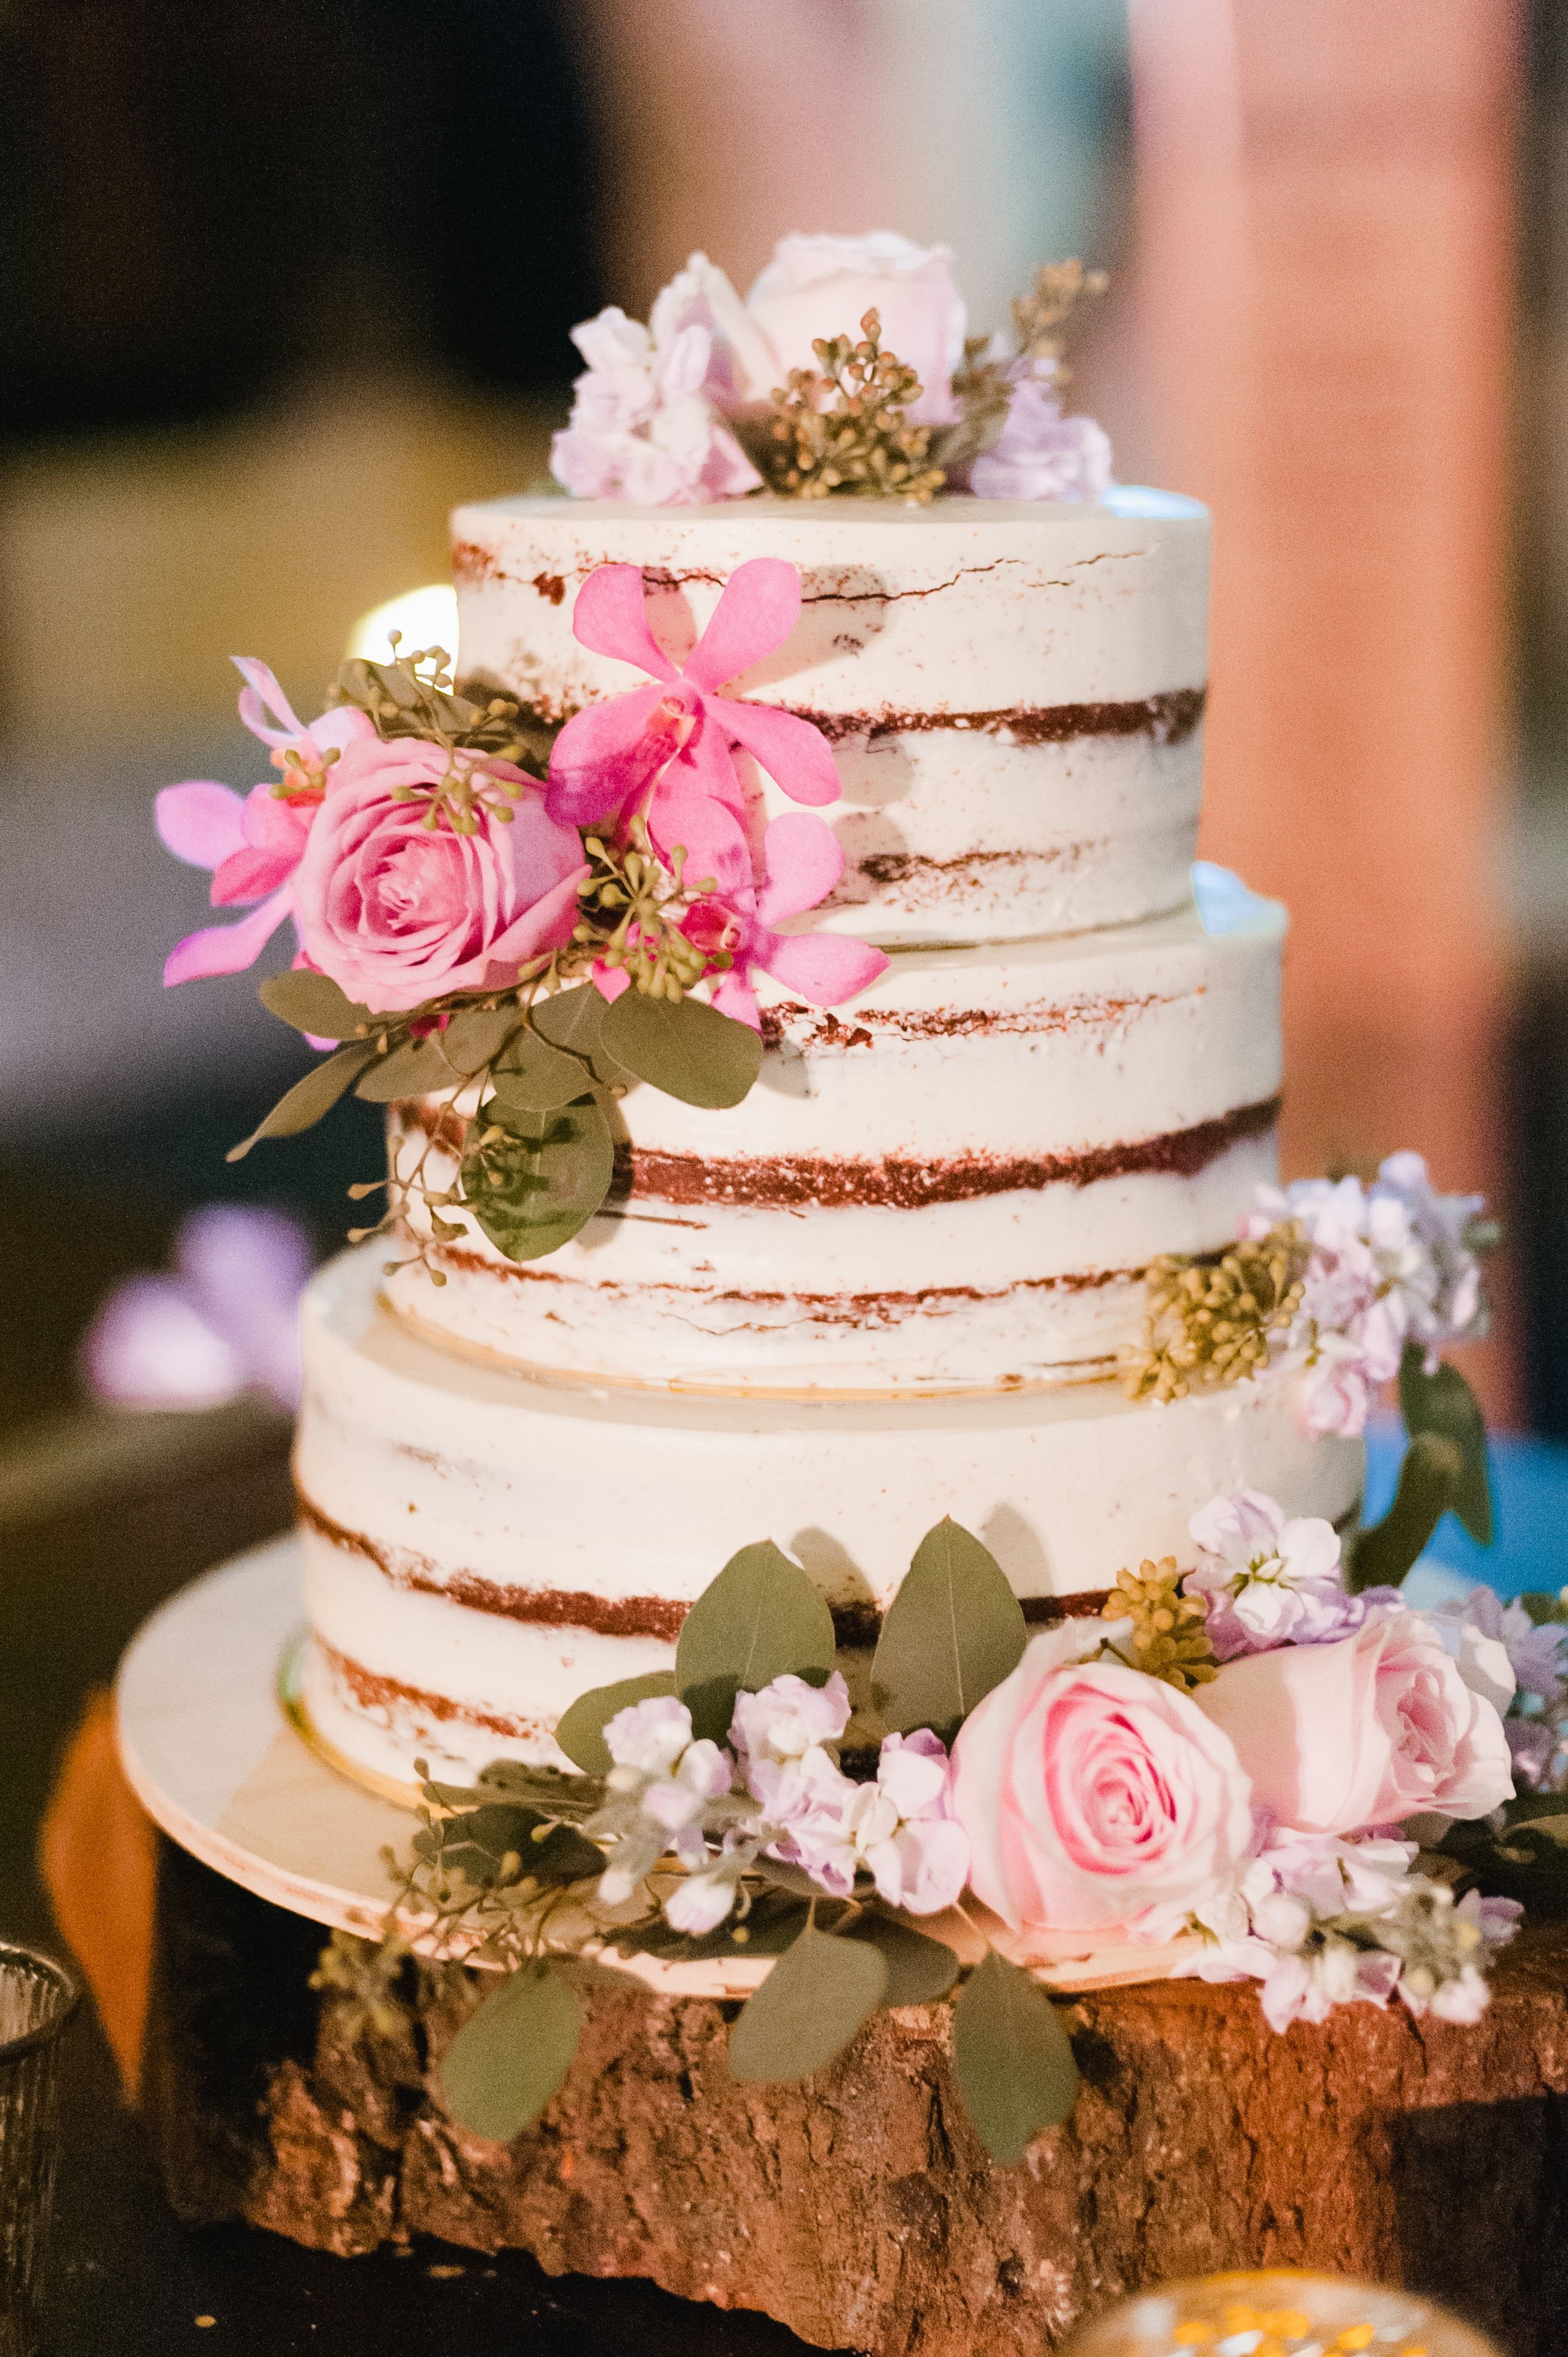 Cake by passion joob joob the bridal planner thailand